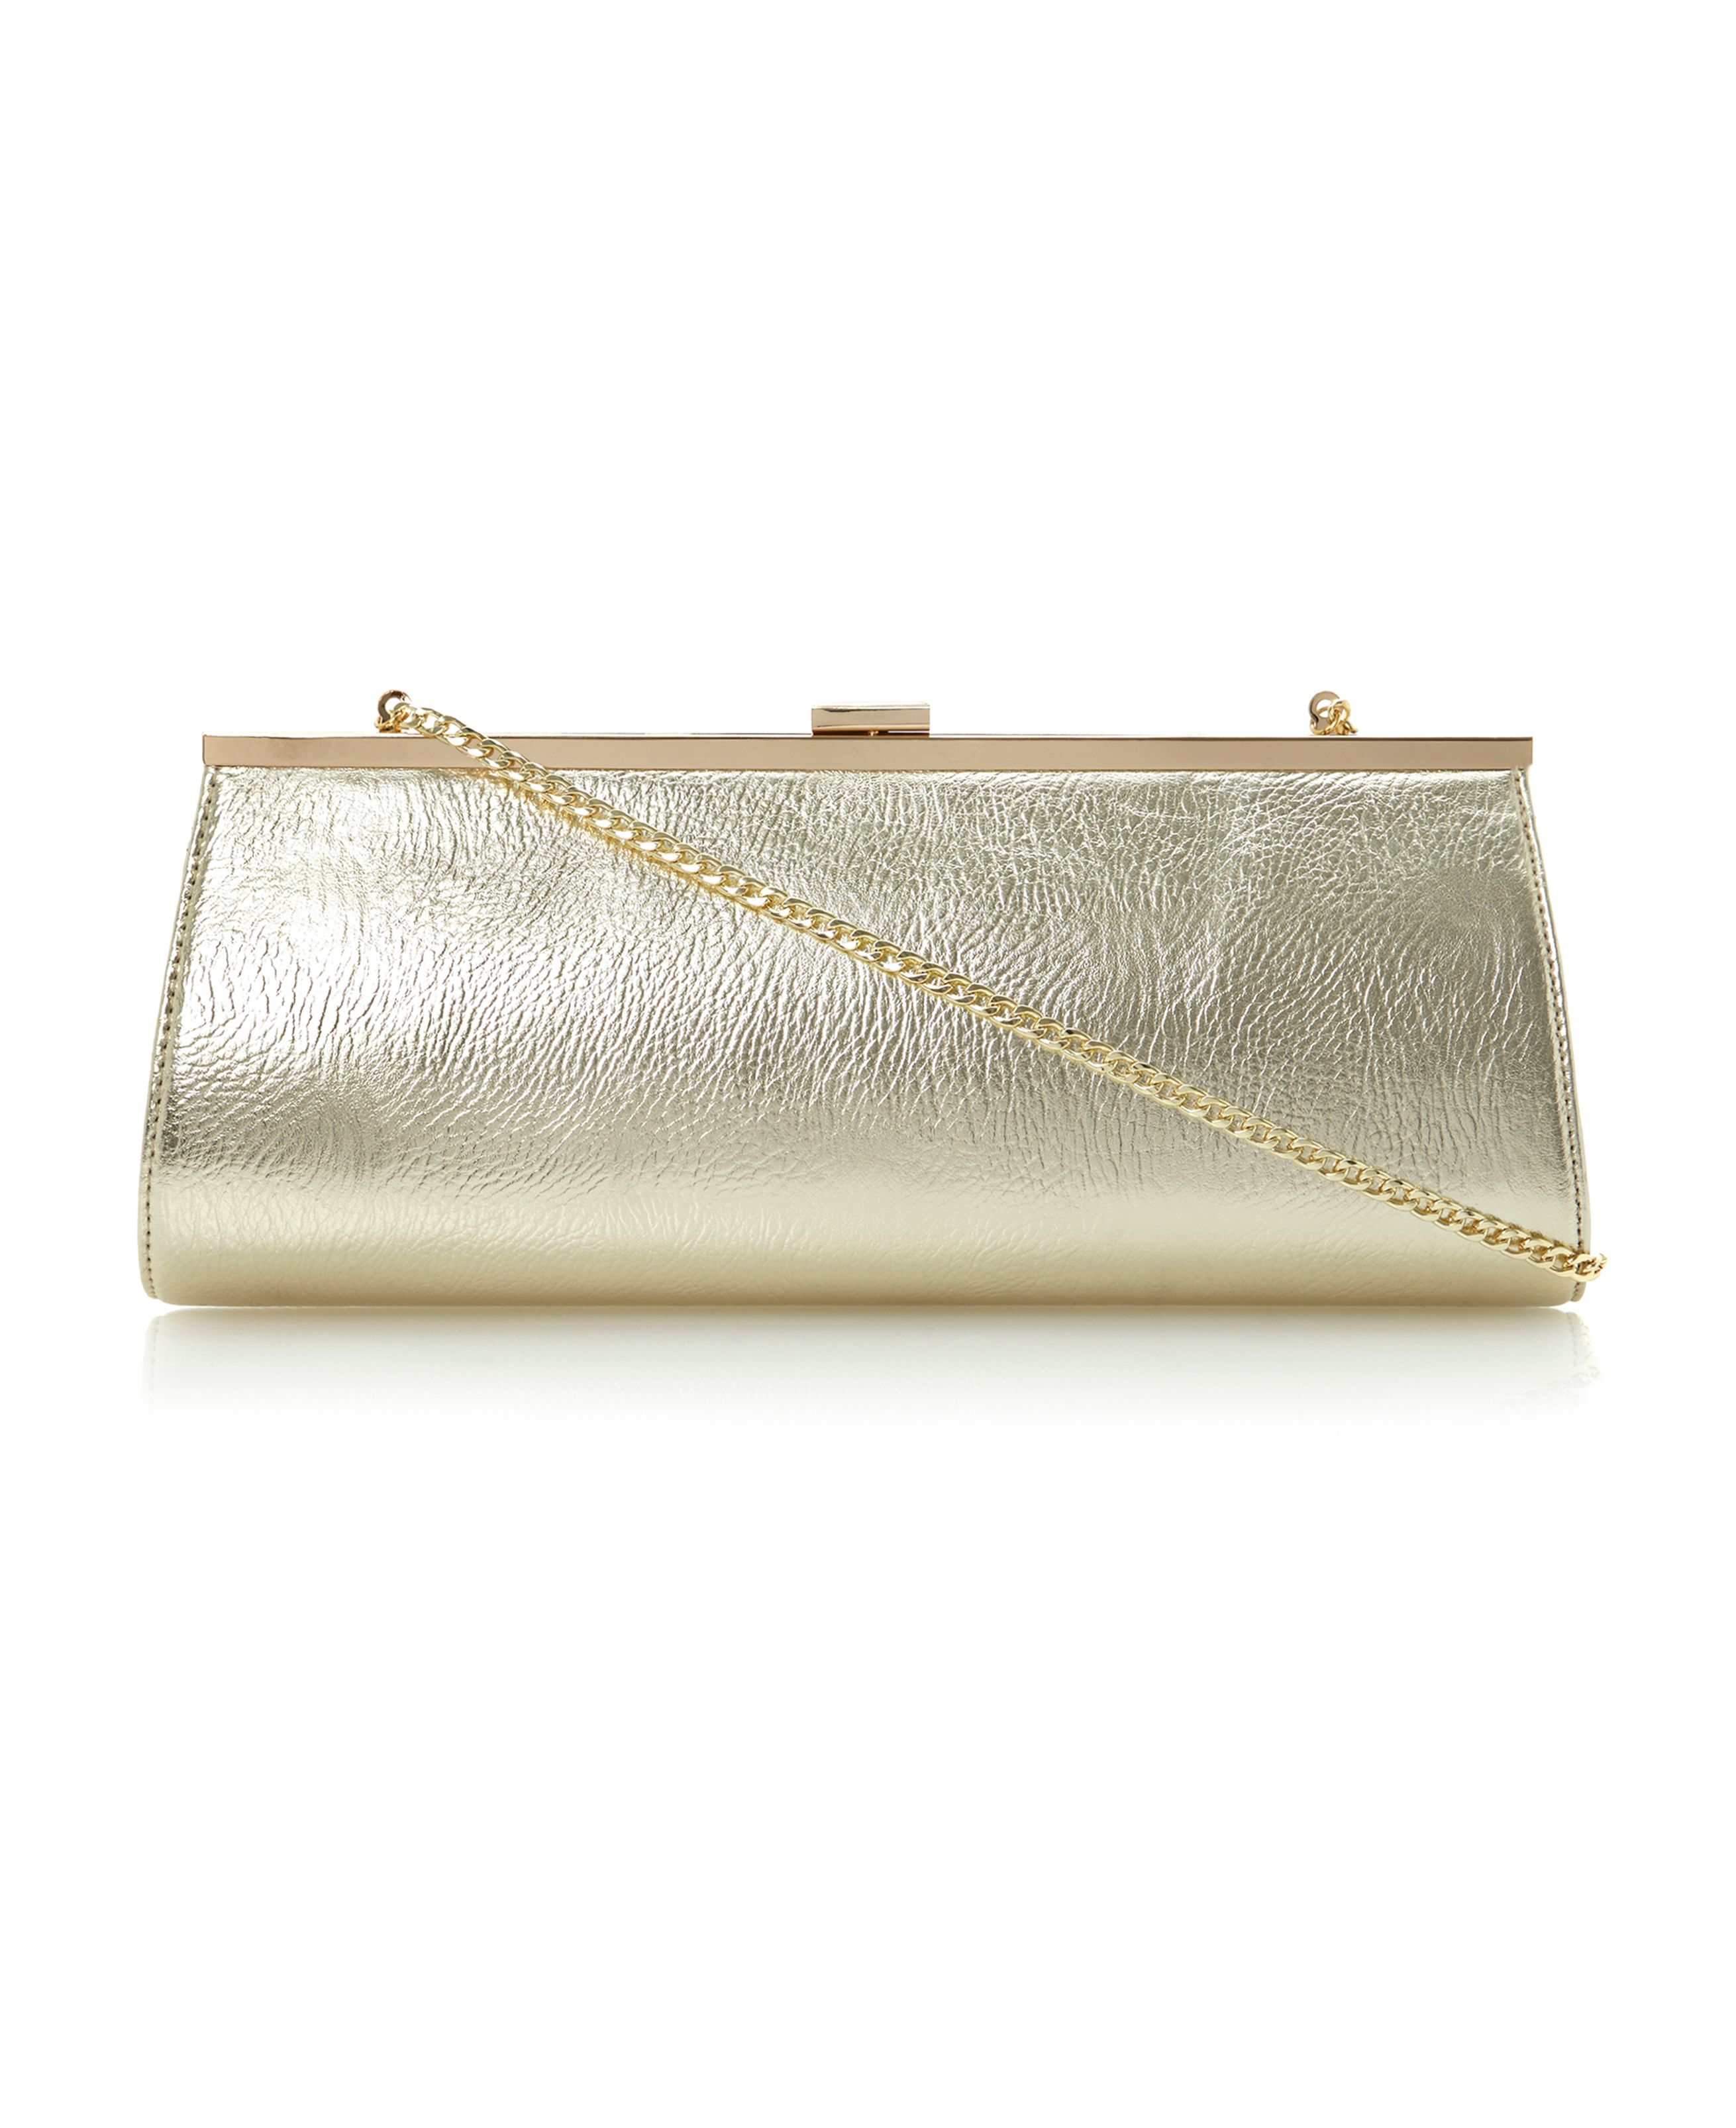 Betallic metallic clutch bag